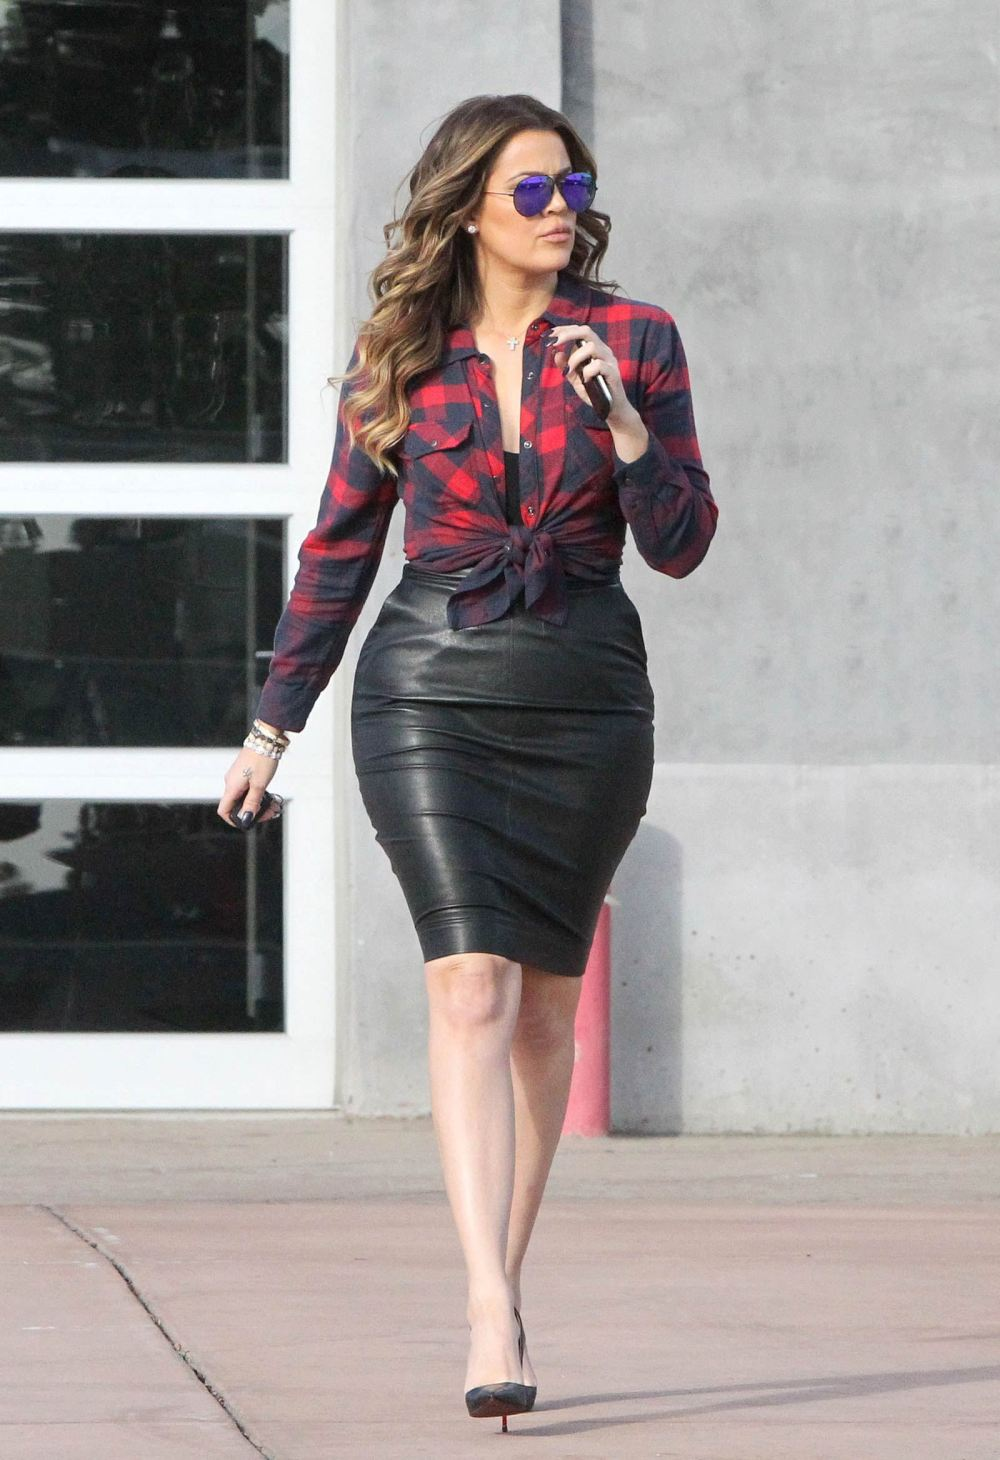 khloe in tight black leather skirt while